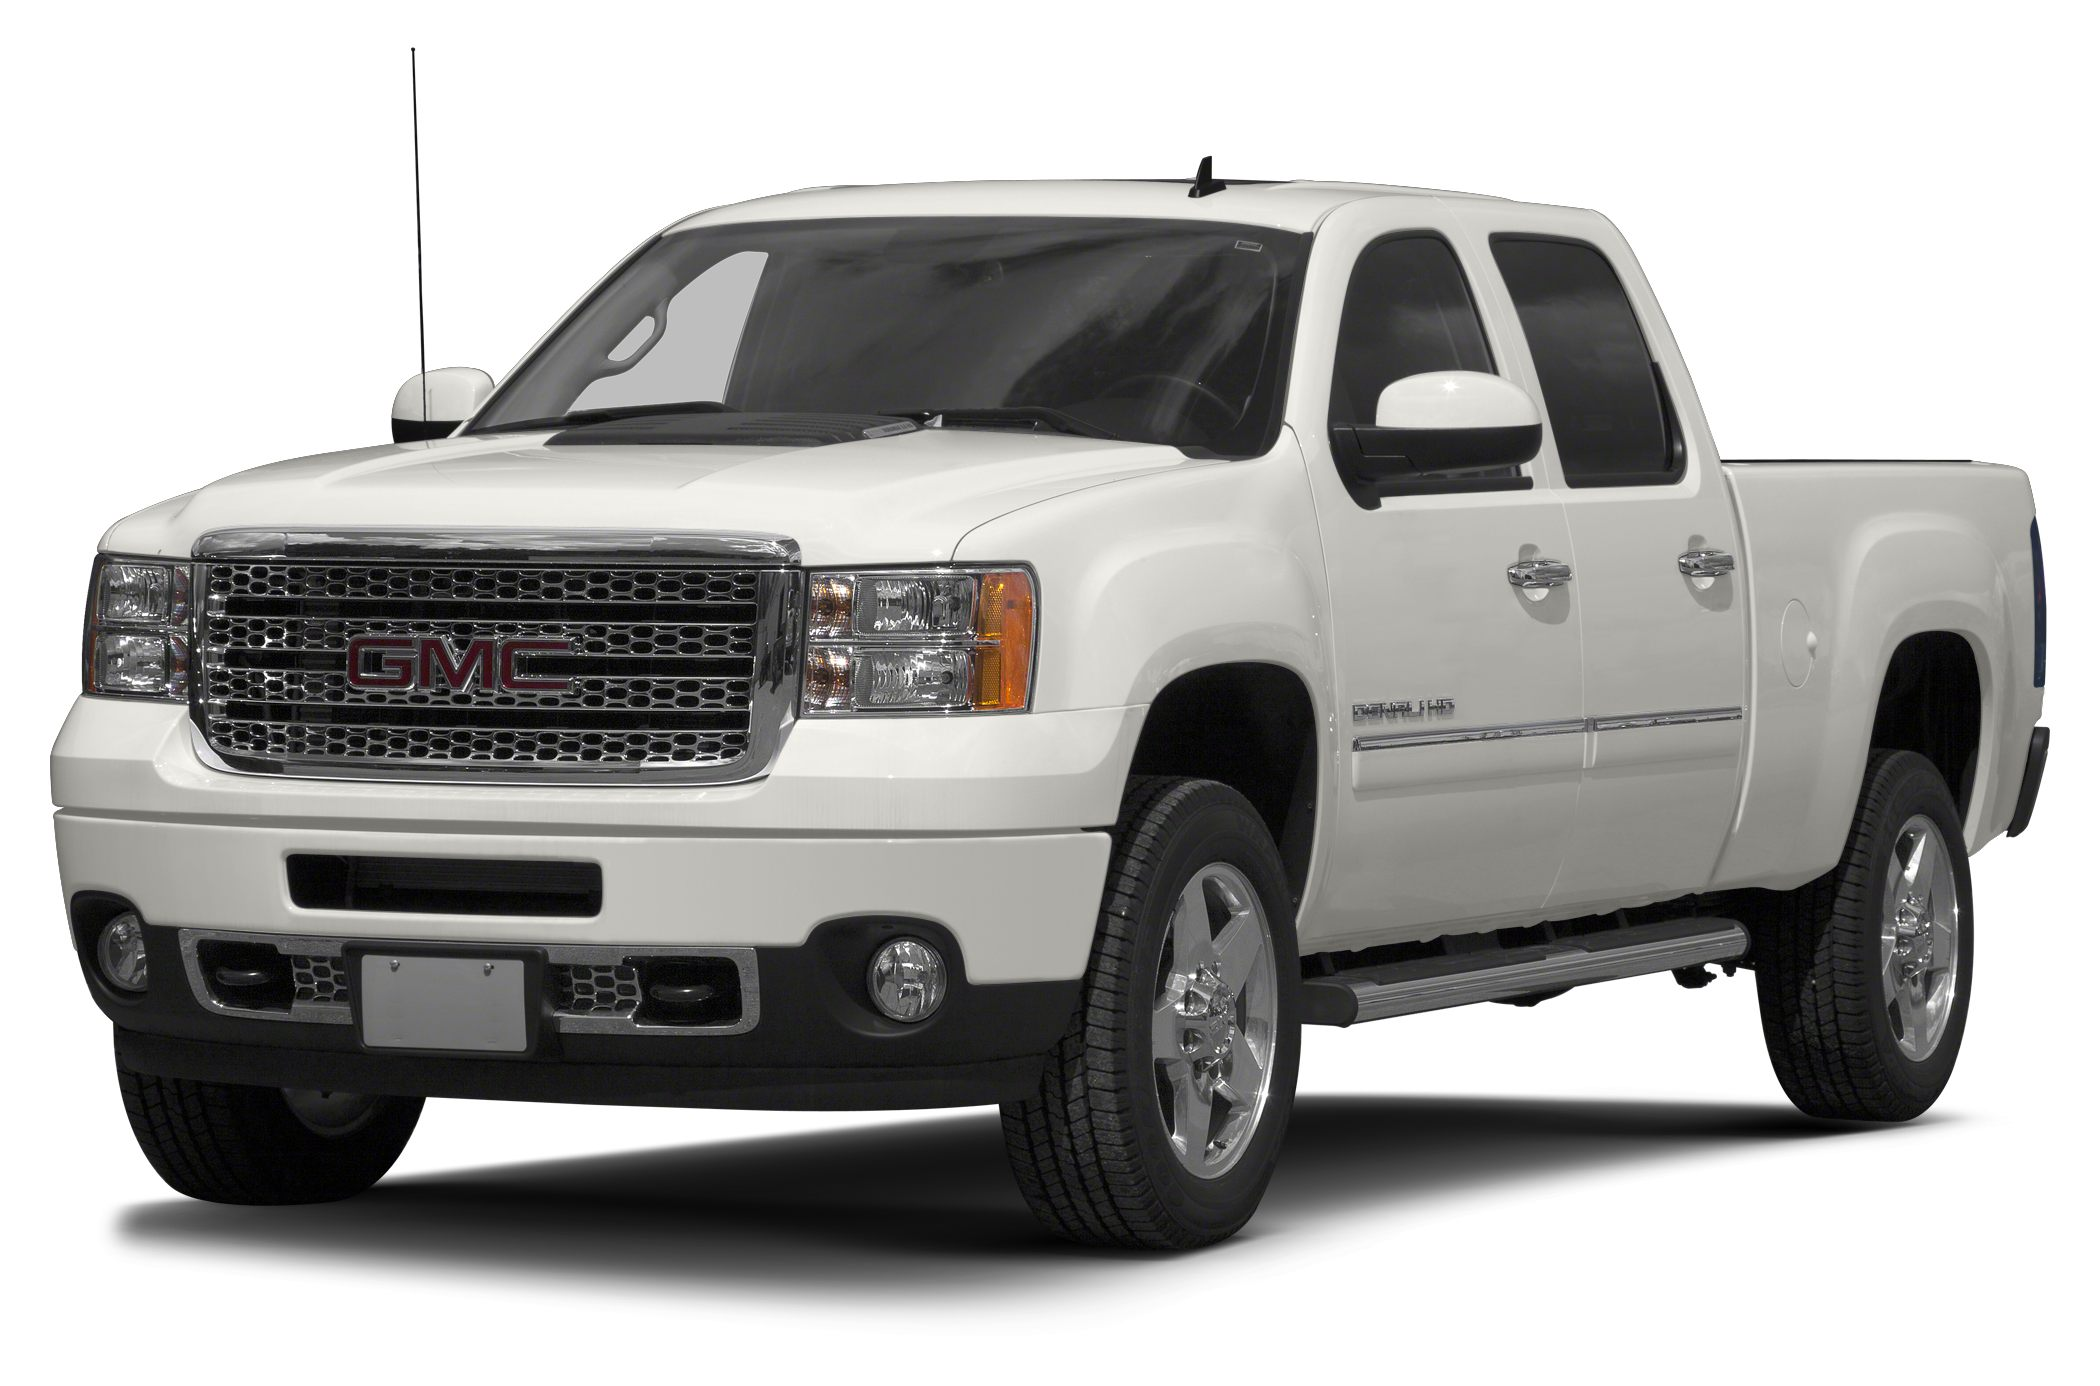 gmc drivers models sierra excites the and seats troy dayton denali